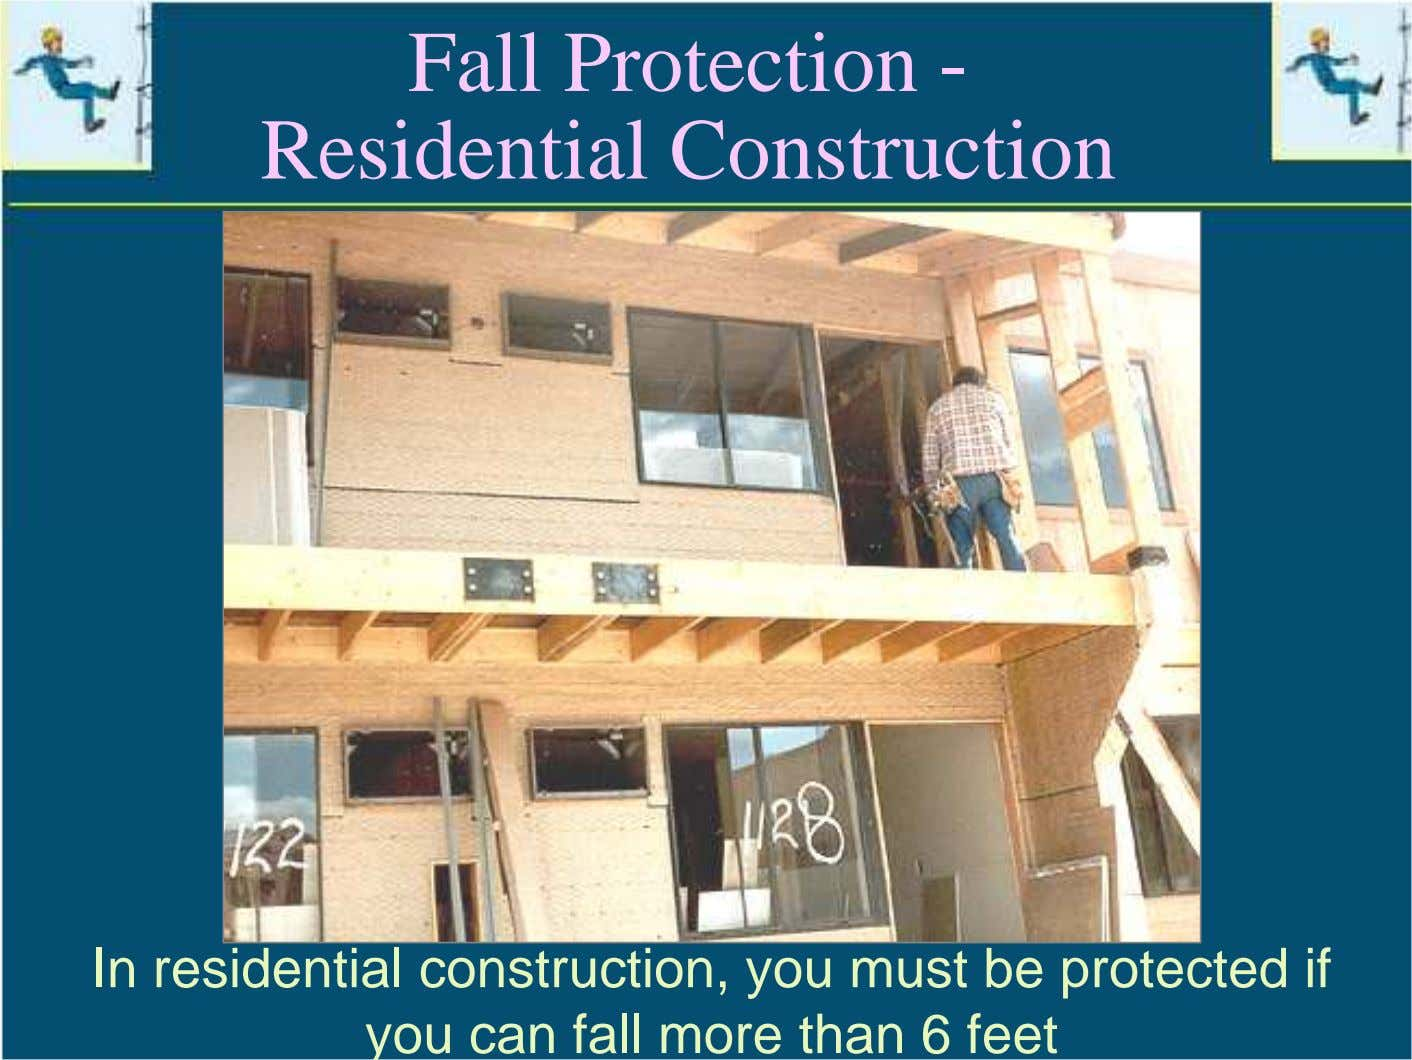 Fall Protection - Residential Construction In residential construction, you must be protected if you can